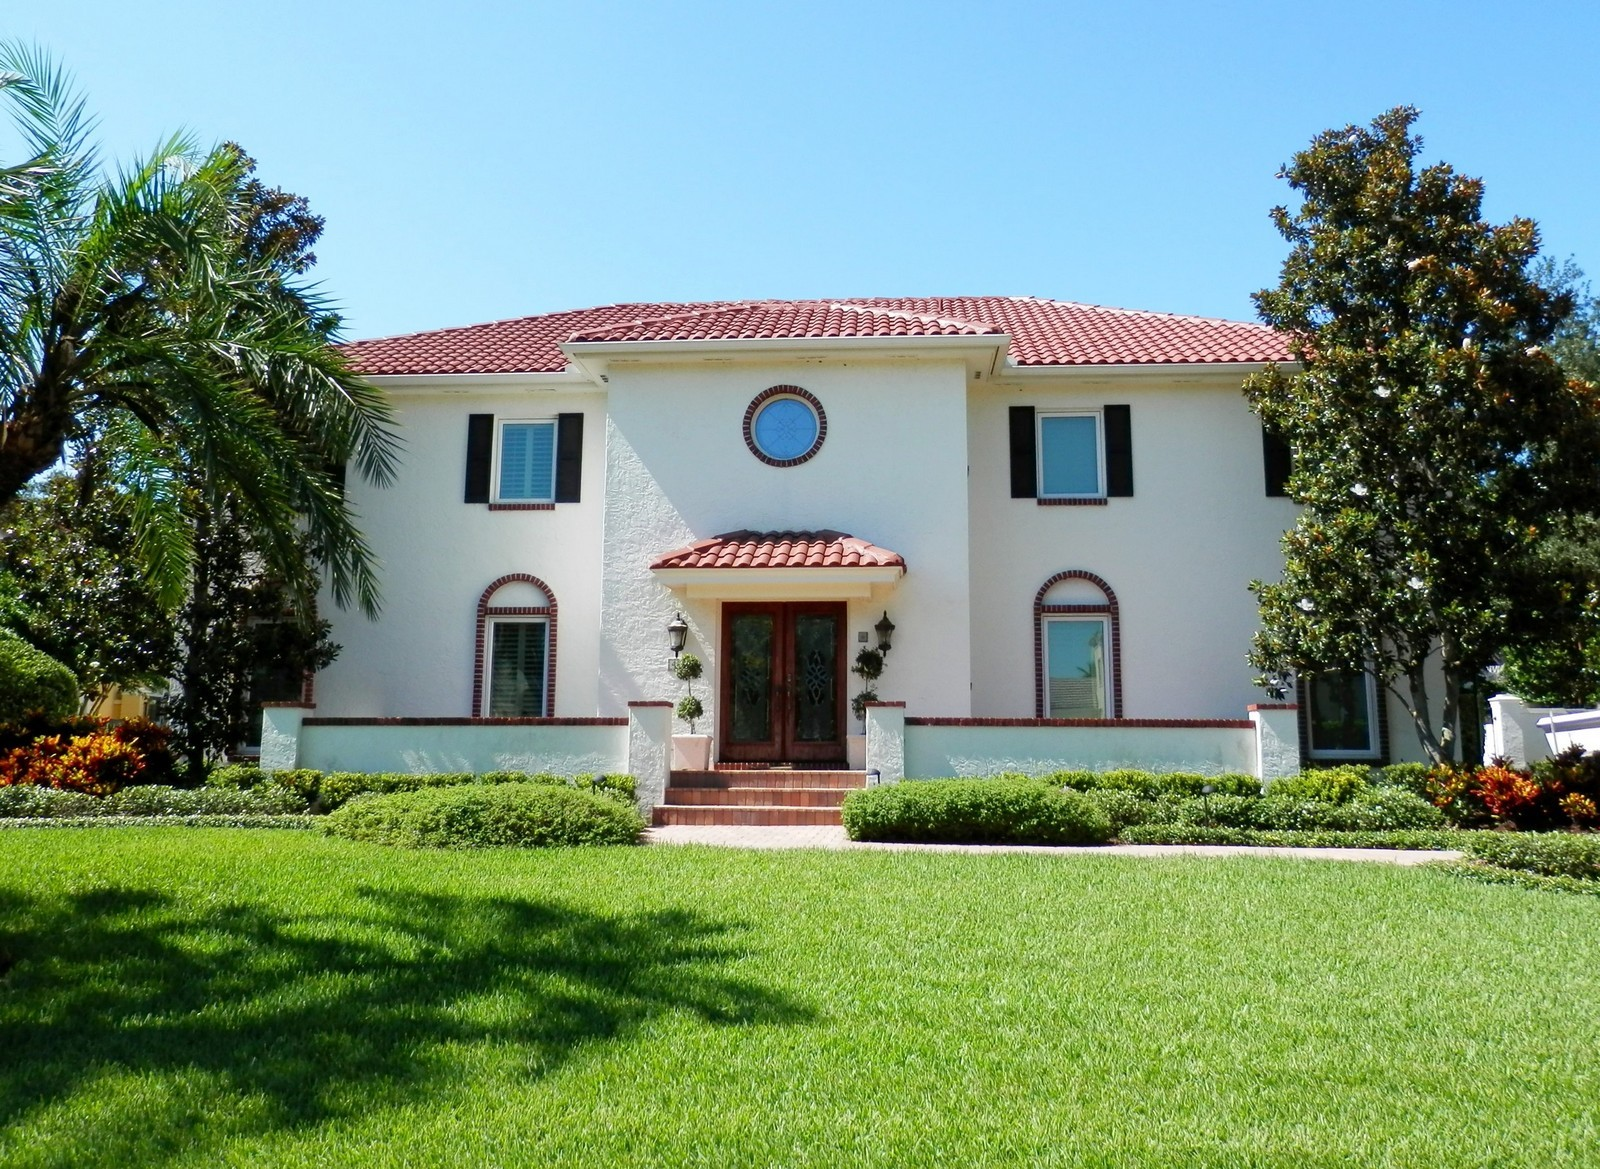 Real Estate Photography - 4922 New Providence Ave, Tampa, FL, 33629 - Front View